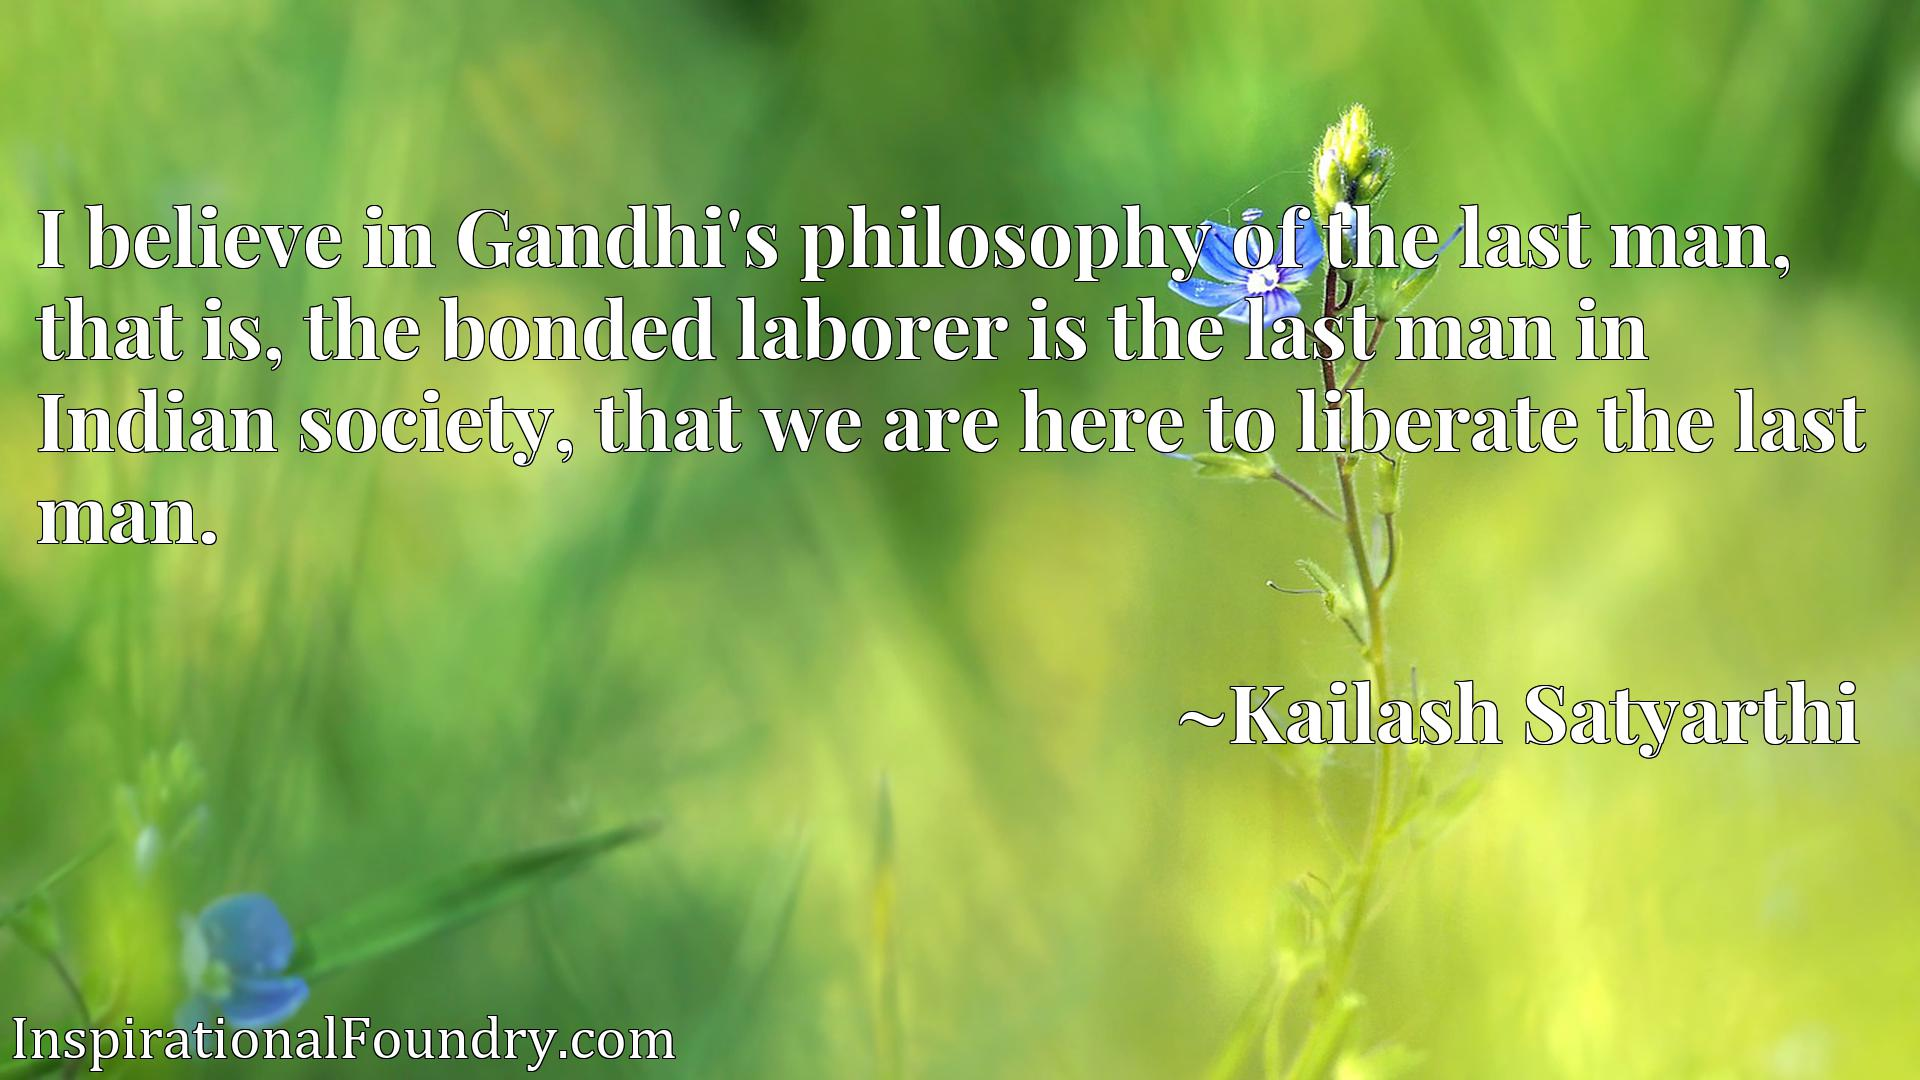 I believe in Gandhi's philosophy of the last man, that is, the bonded laborer is the last man in Indian society, that we are here to liberate the last man.